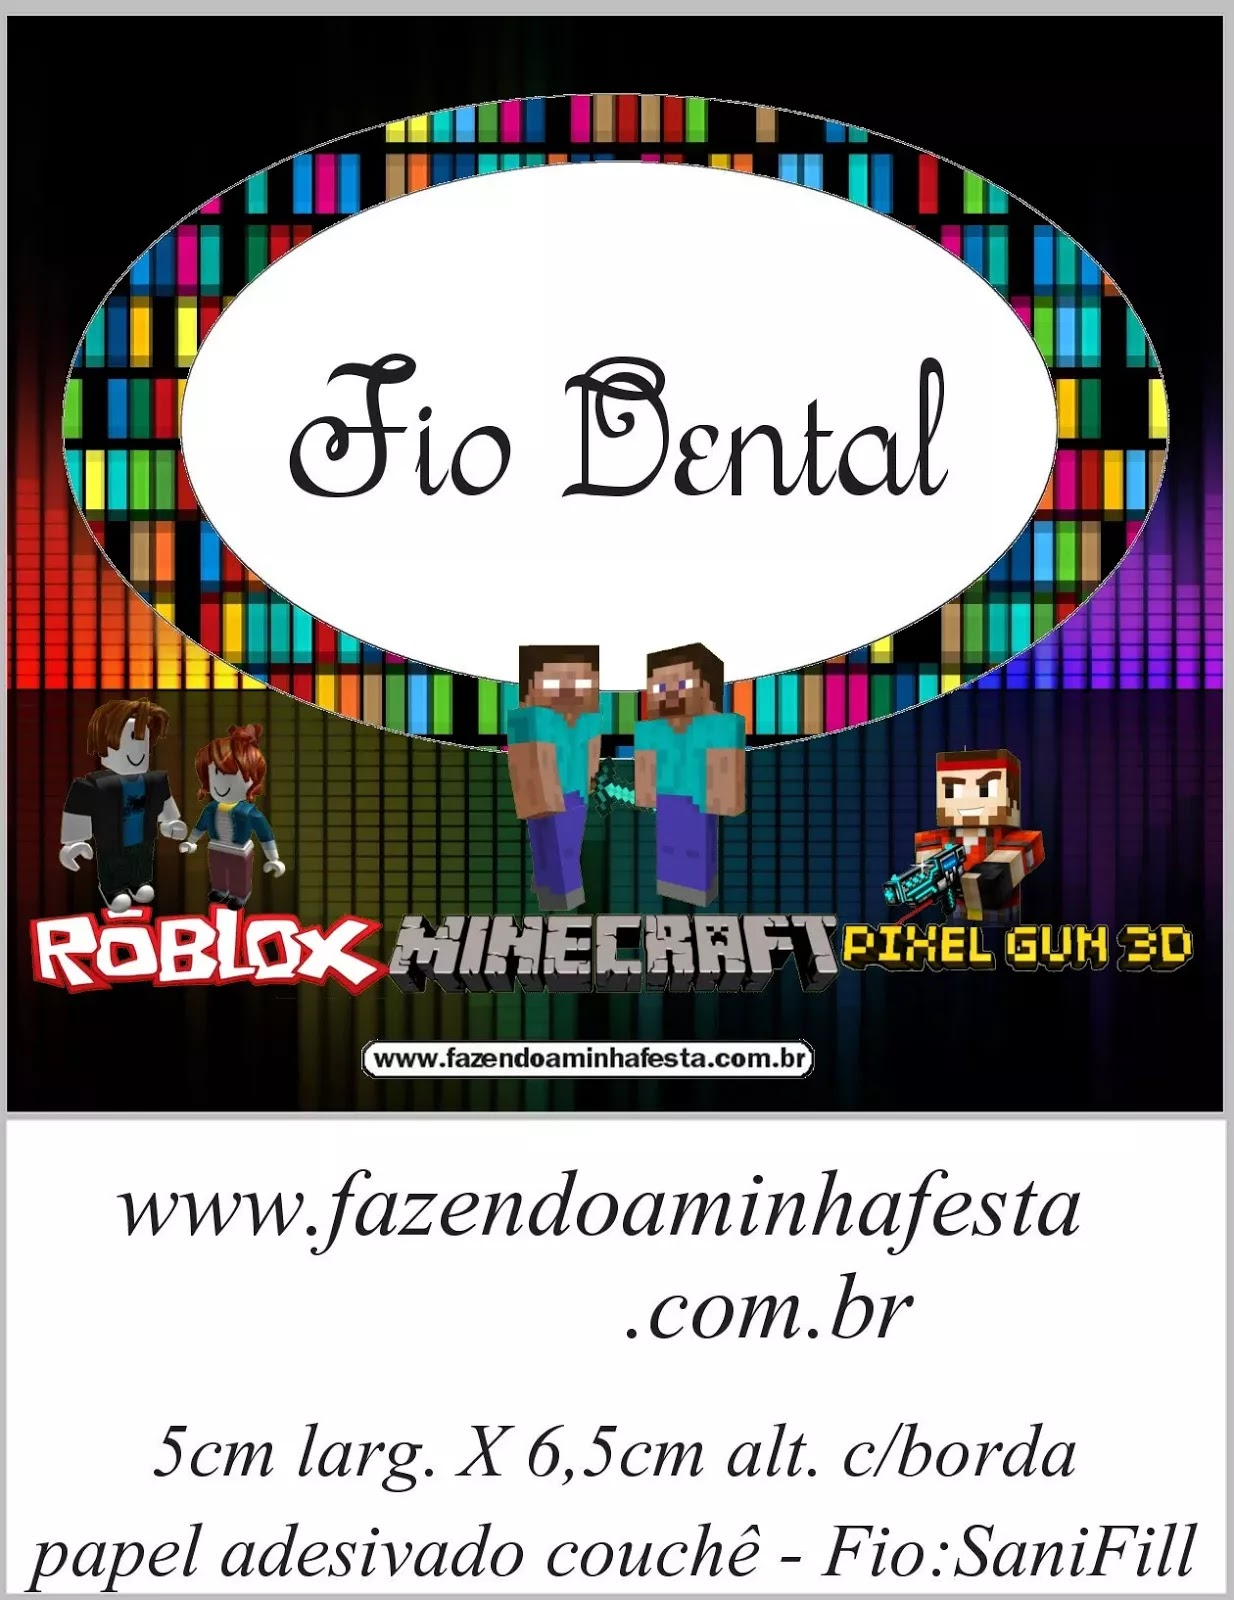 Pixel Gum 3d Roblox And Minecraft Free Printable Candy Bar - caixa cone roblox